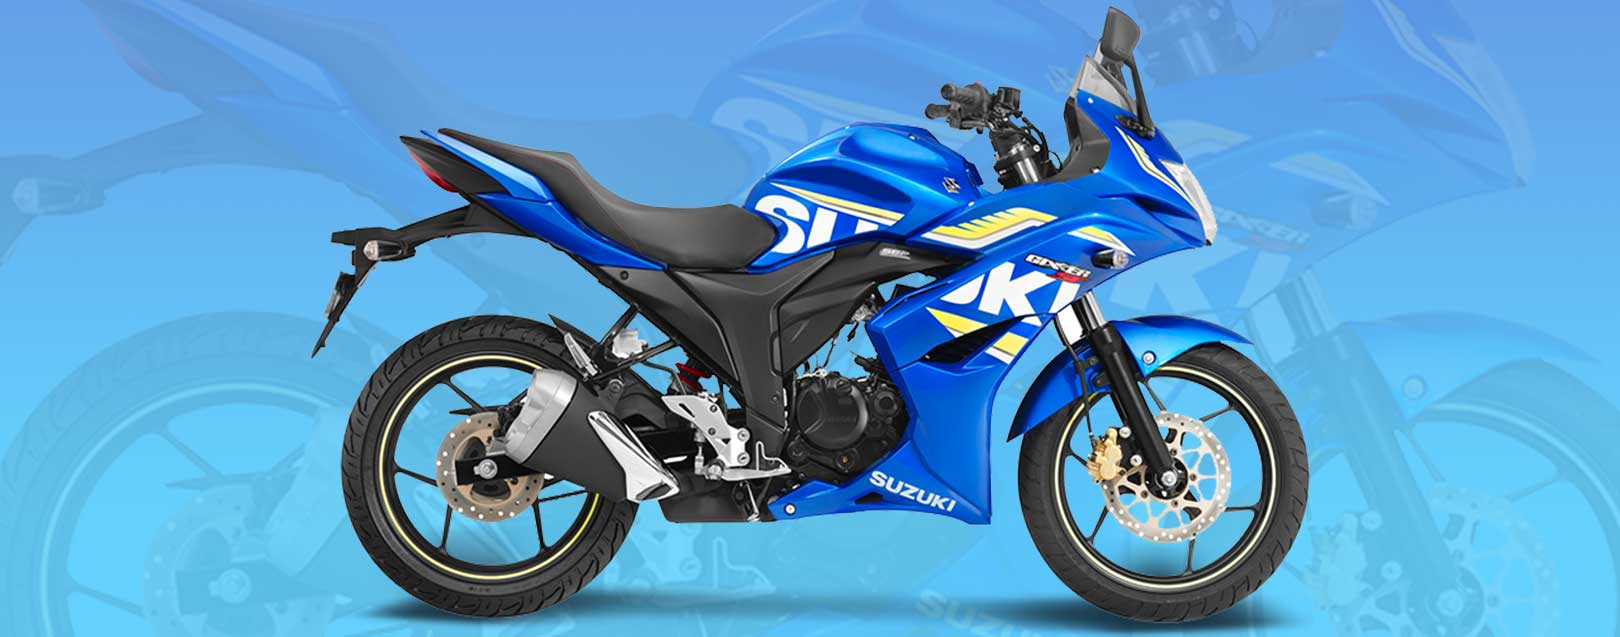 Suzuki to export made in India motorcycle model Gixxer to Japan